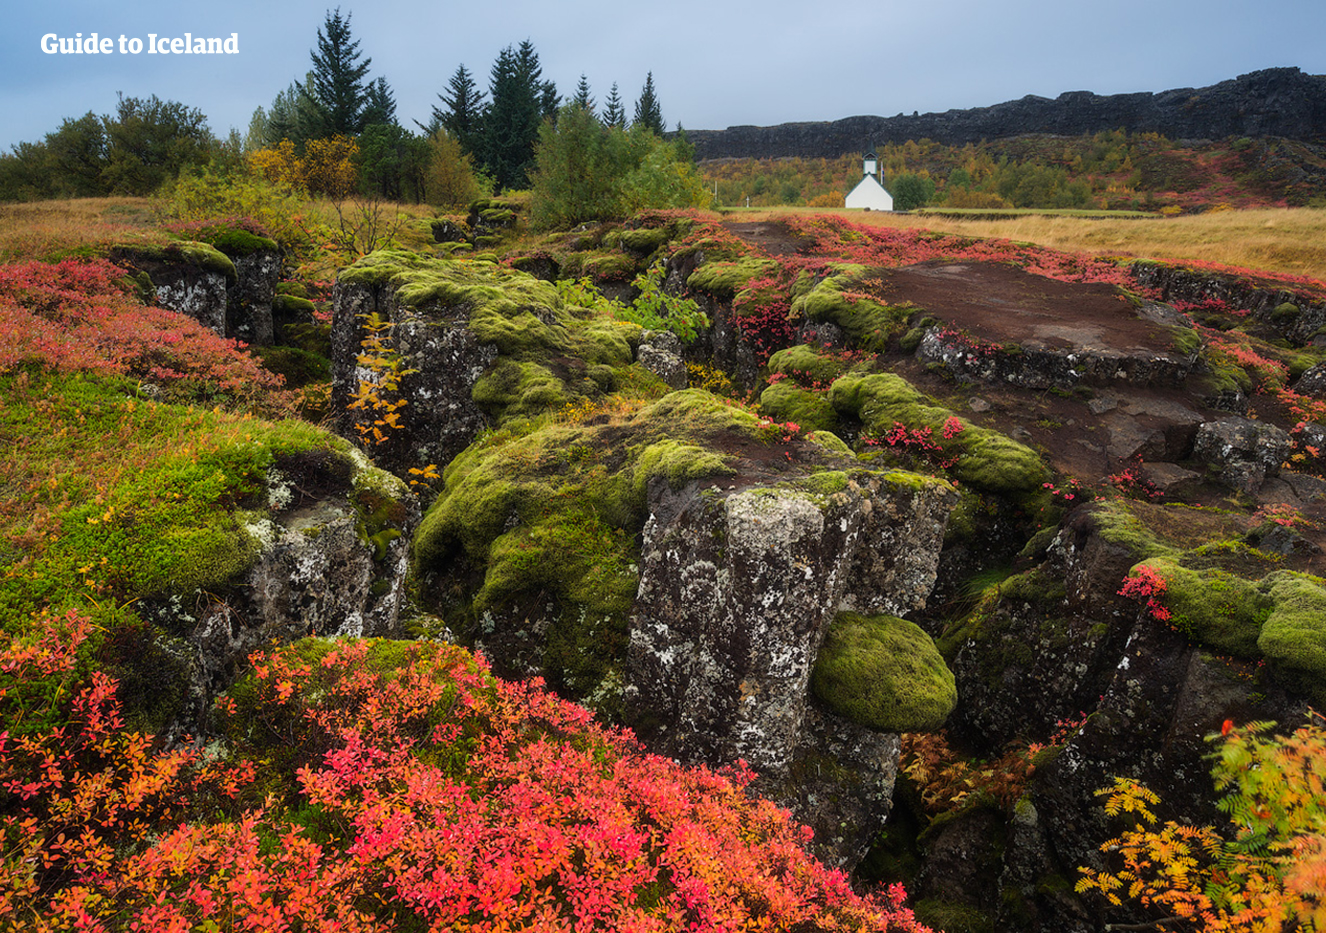 3 Day Summer Self Drive Tour of Iceland's Blue Lagoon, the Golden Circle & the South Coast - day 2